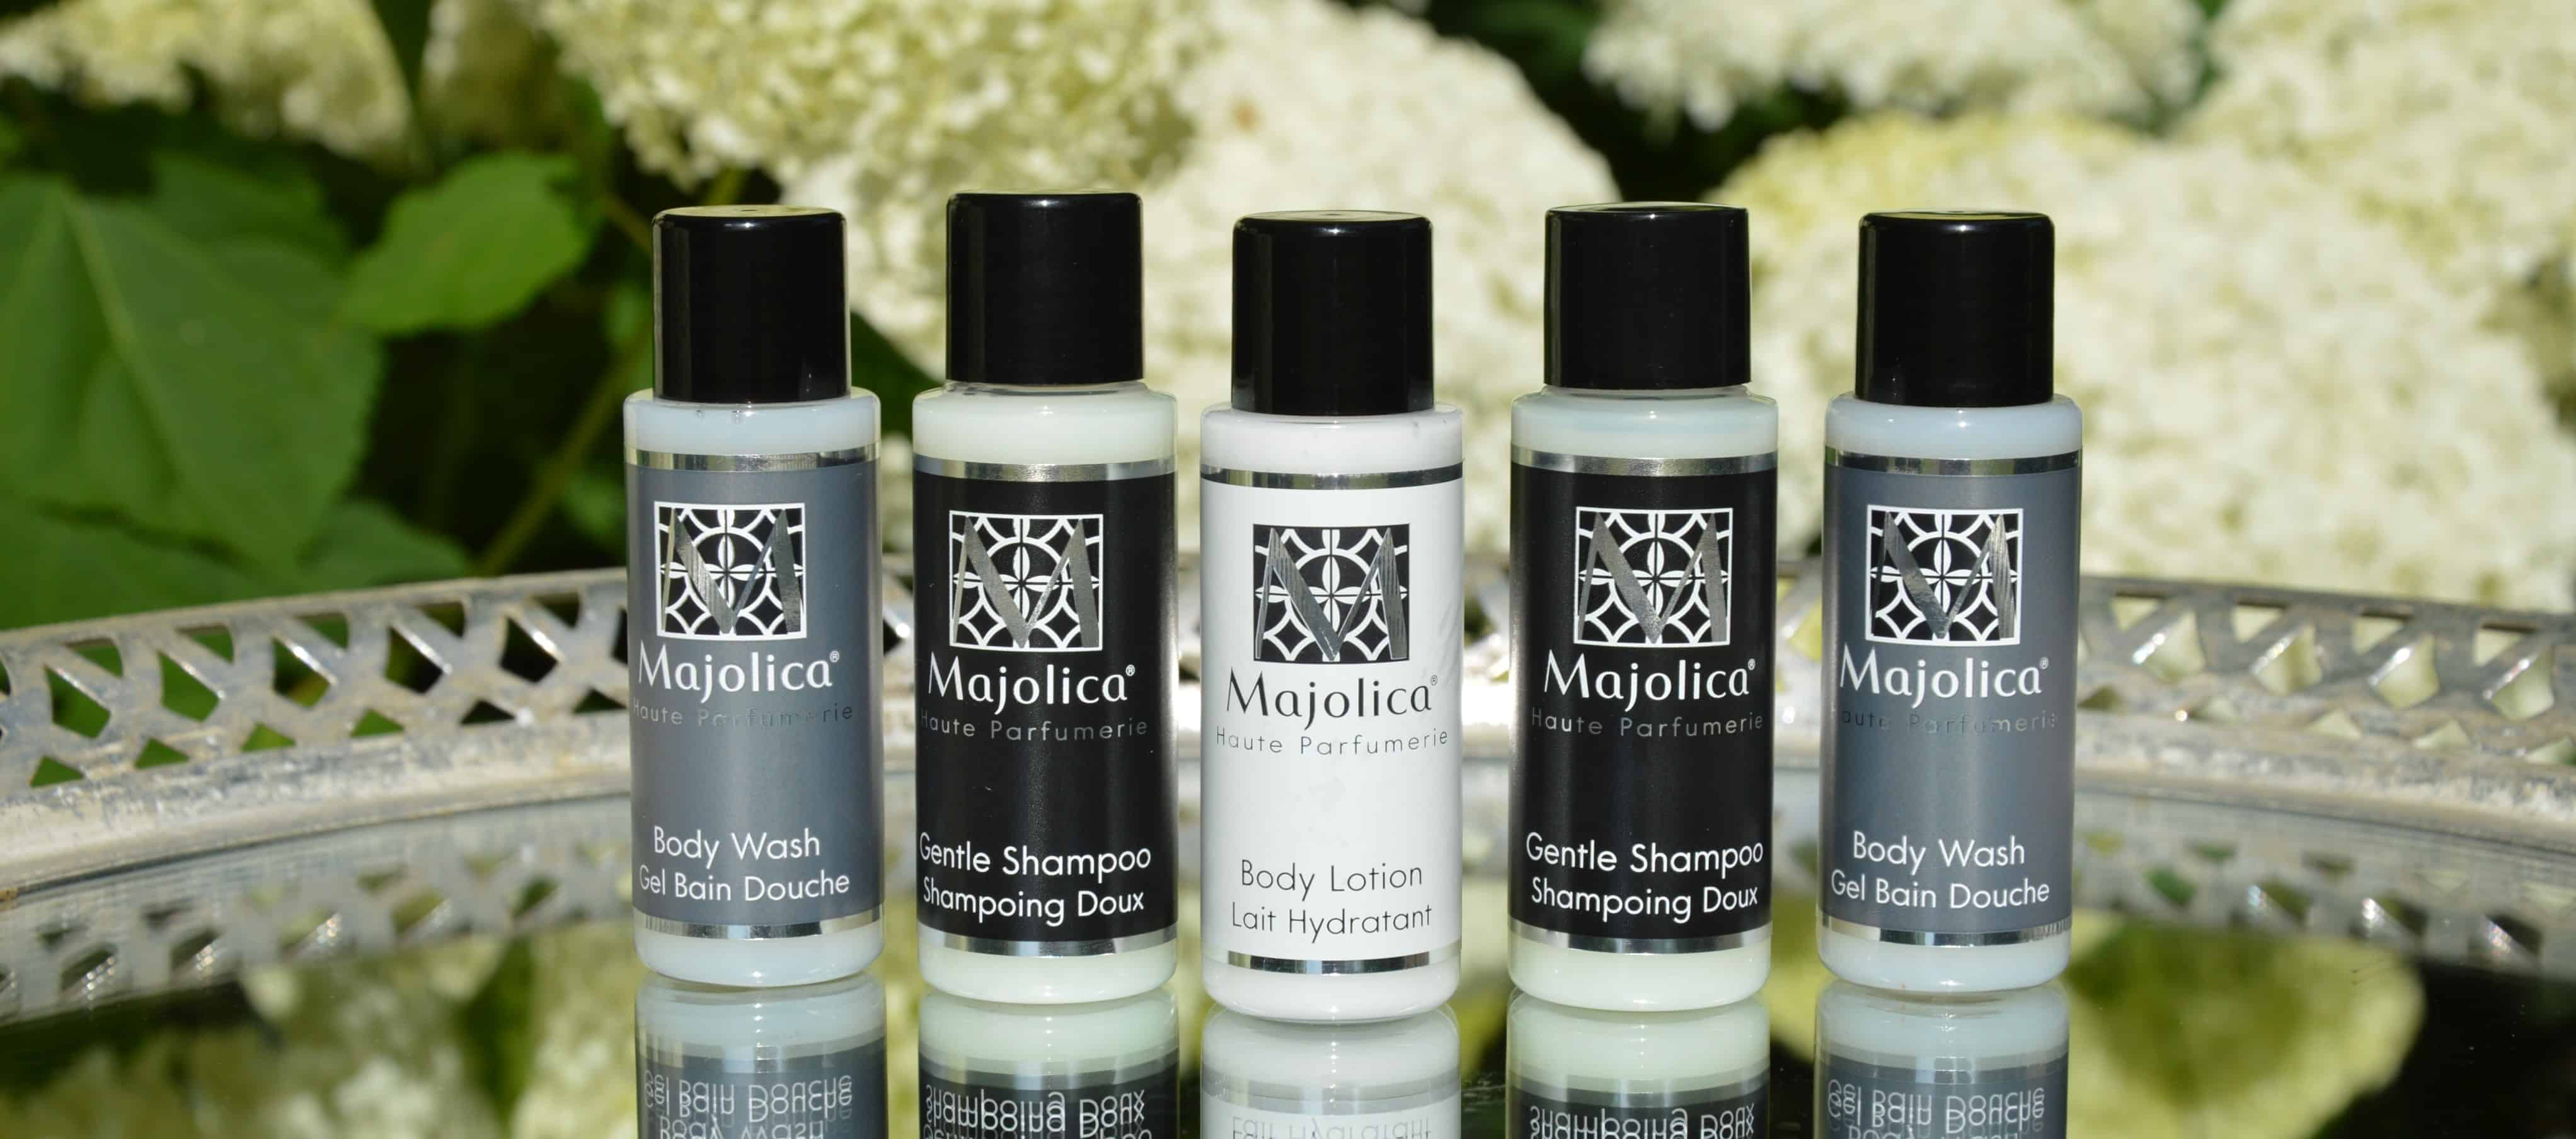 Majolica Noir Luxury Guest Toiletries